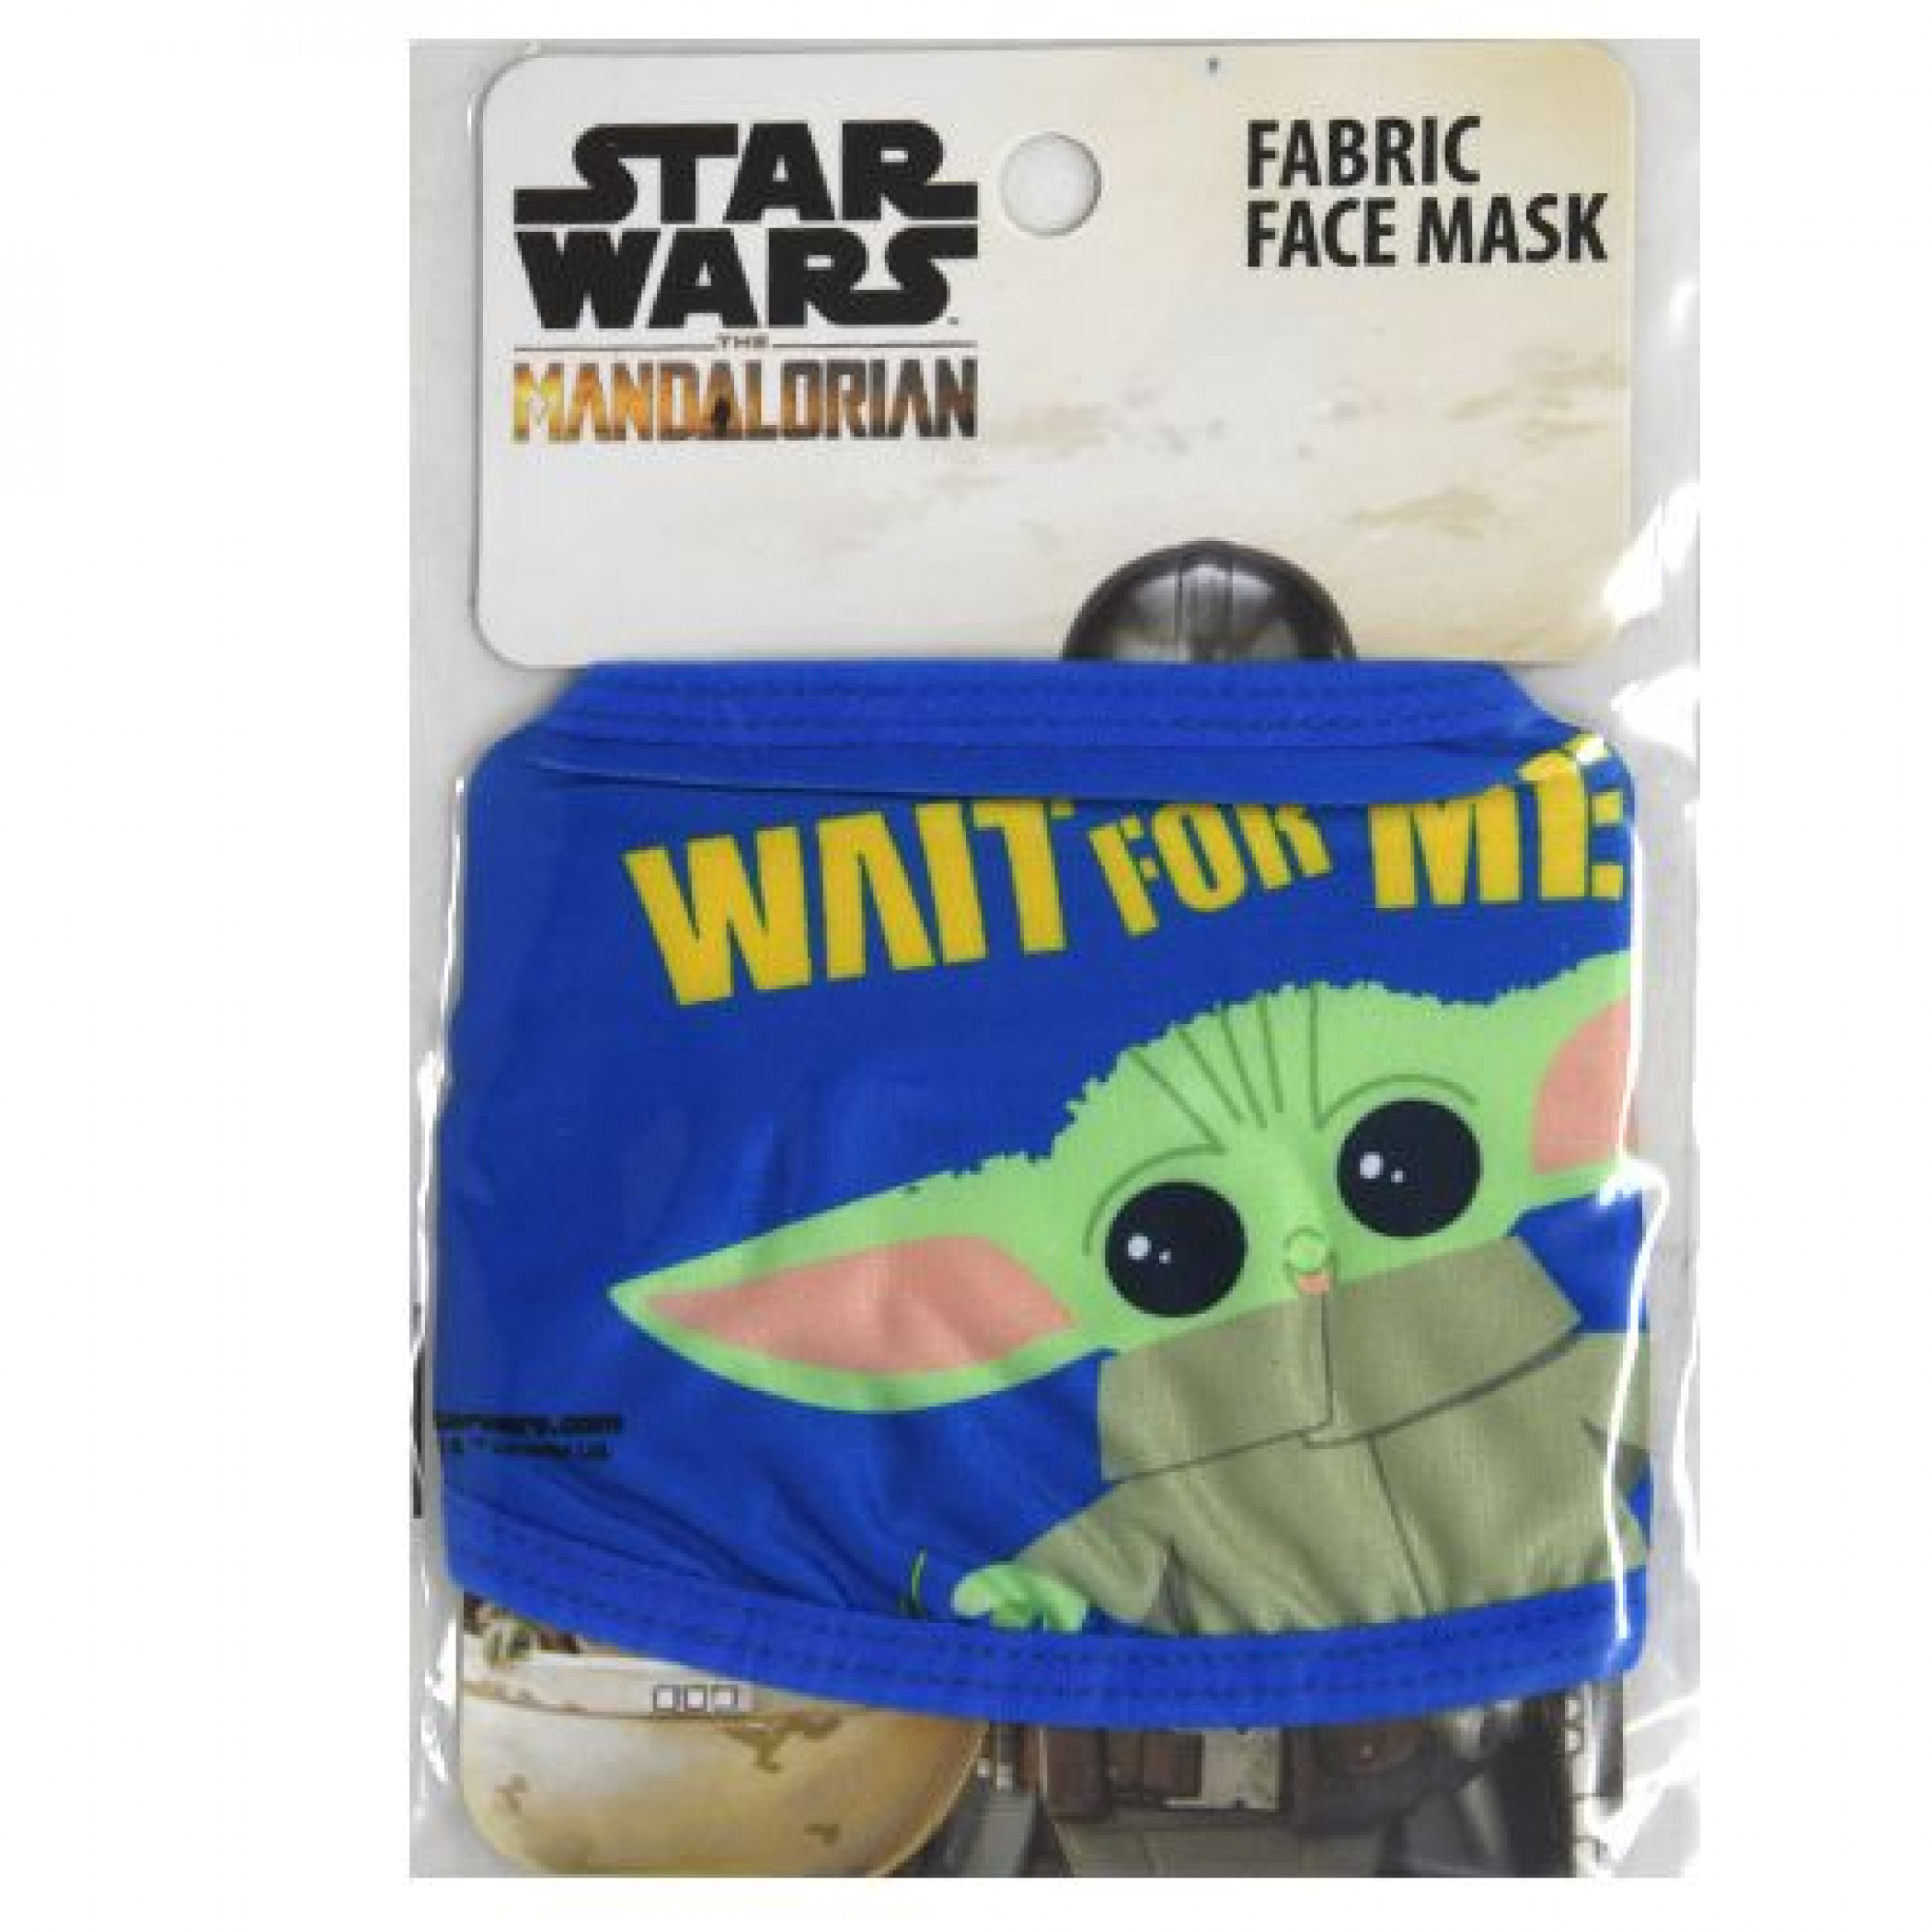 Star Wars The Mandalorian The Child Youth Sized Fabric Face Mask